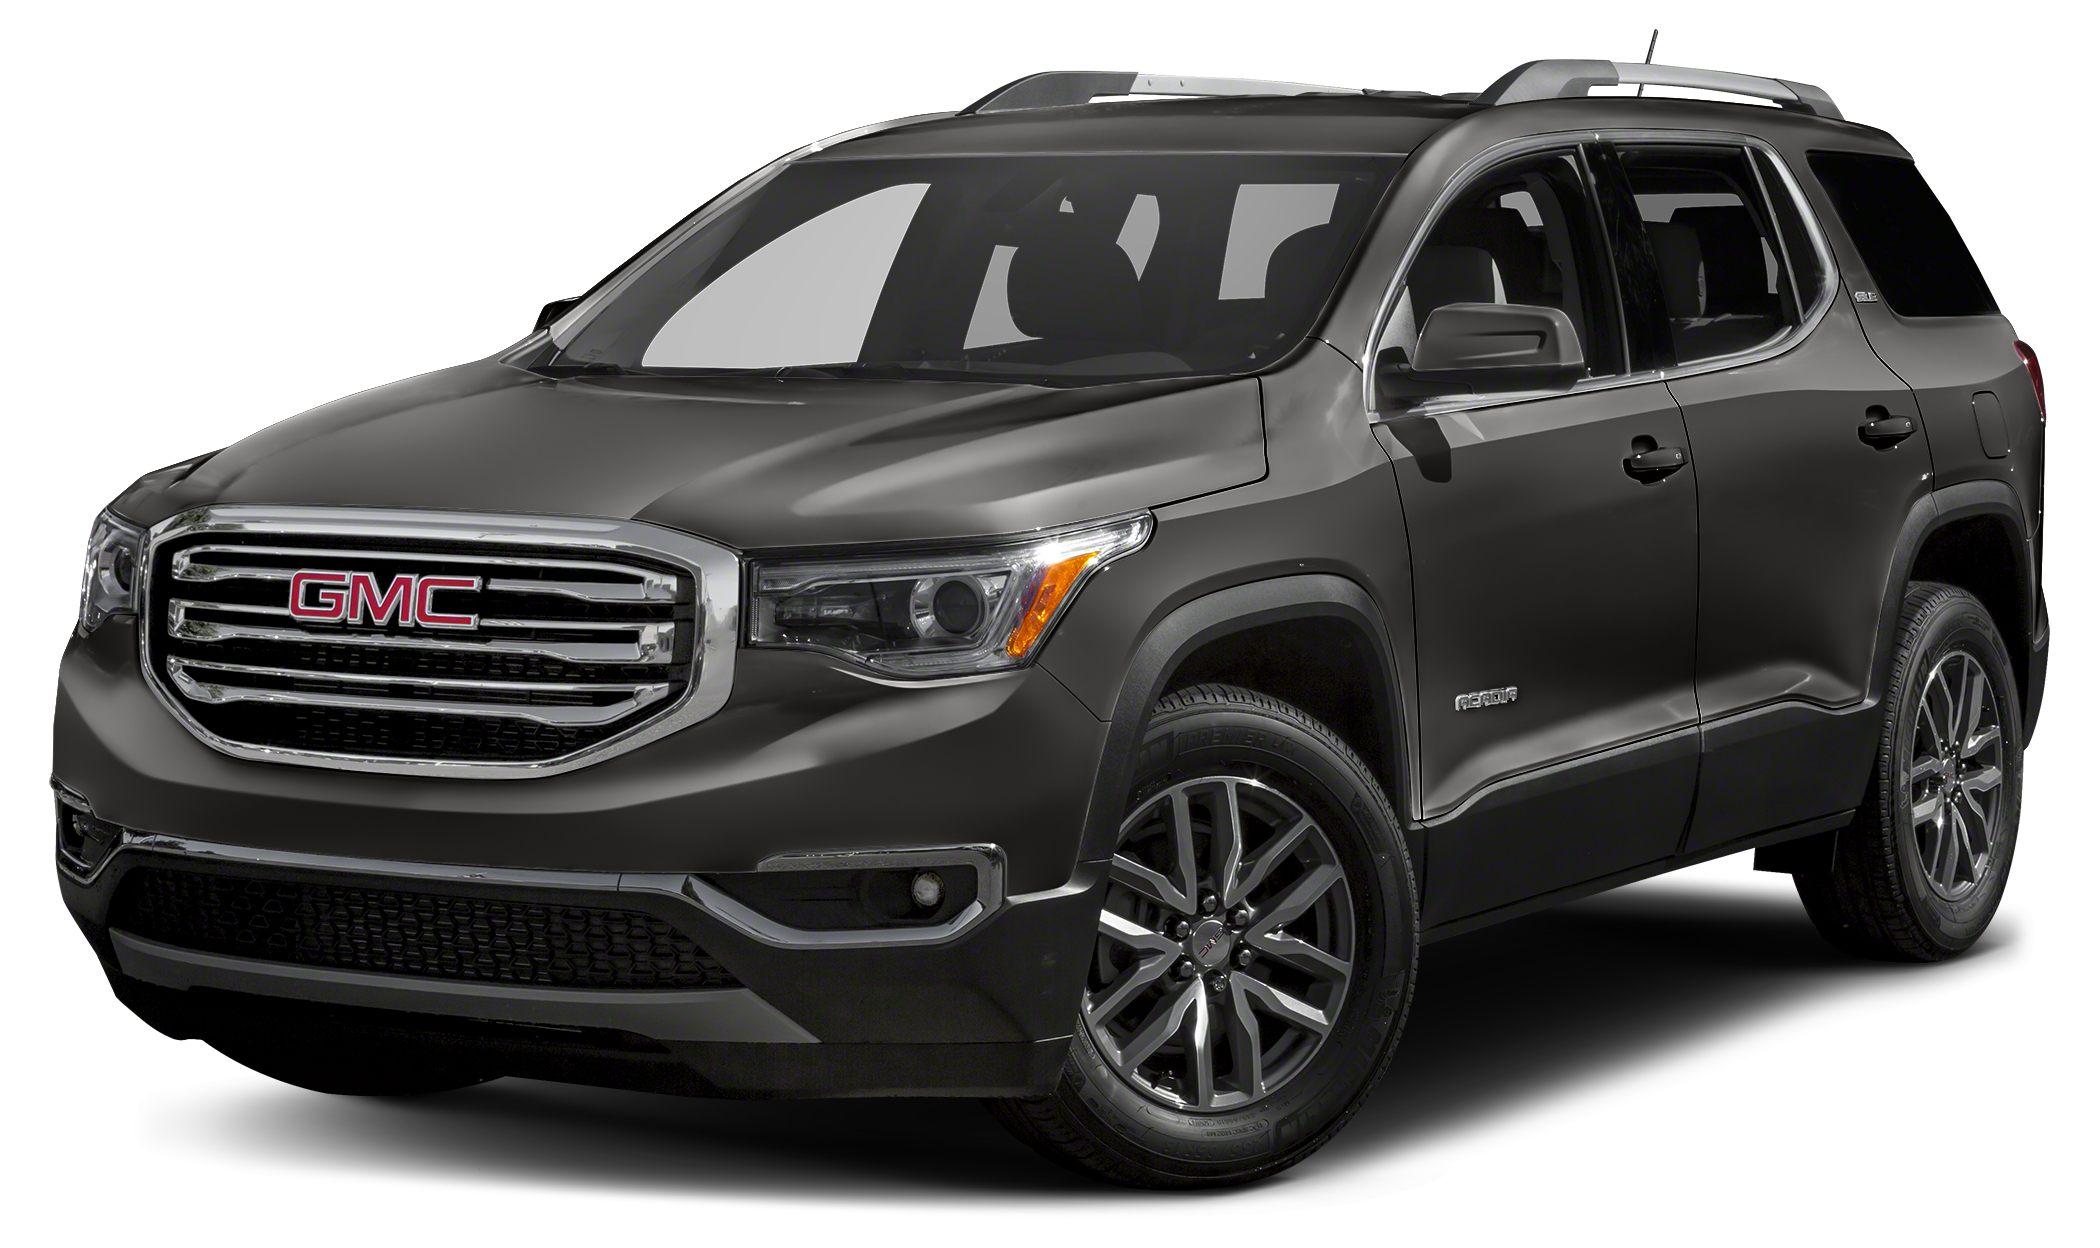 2018 GMC Acadia SLE-2 When youre ready for an automotive upgrade try this 2018 GMC Acadia SLE-2